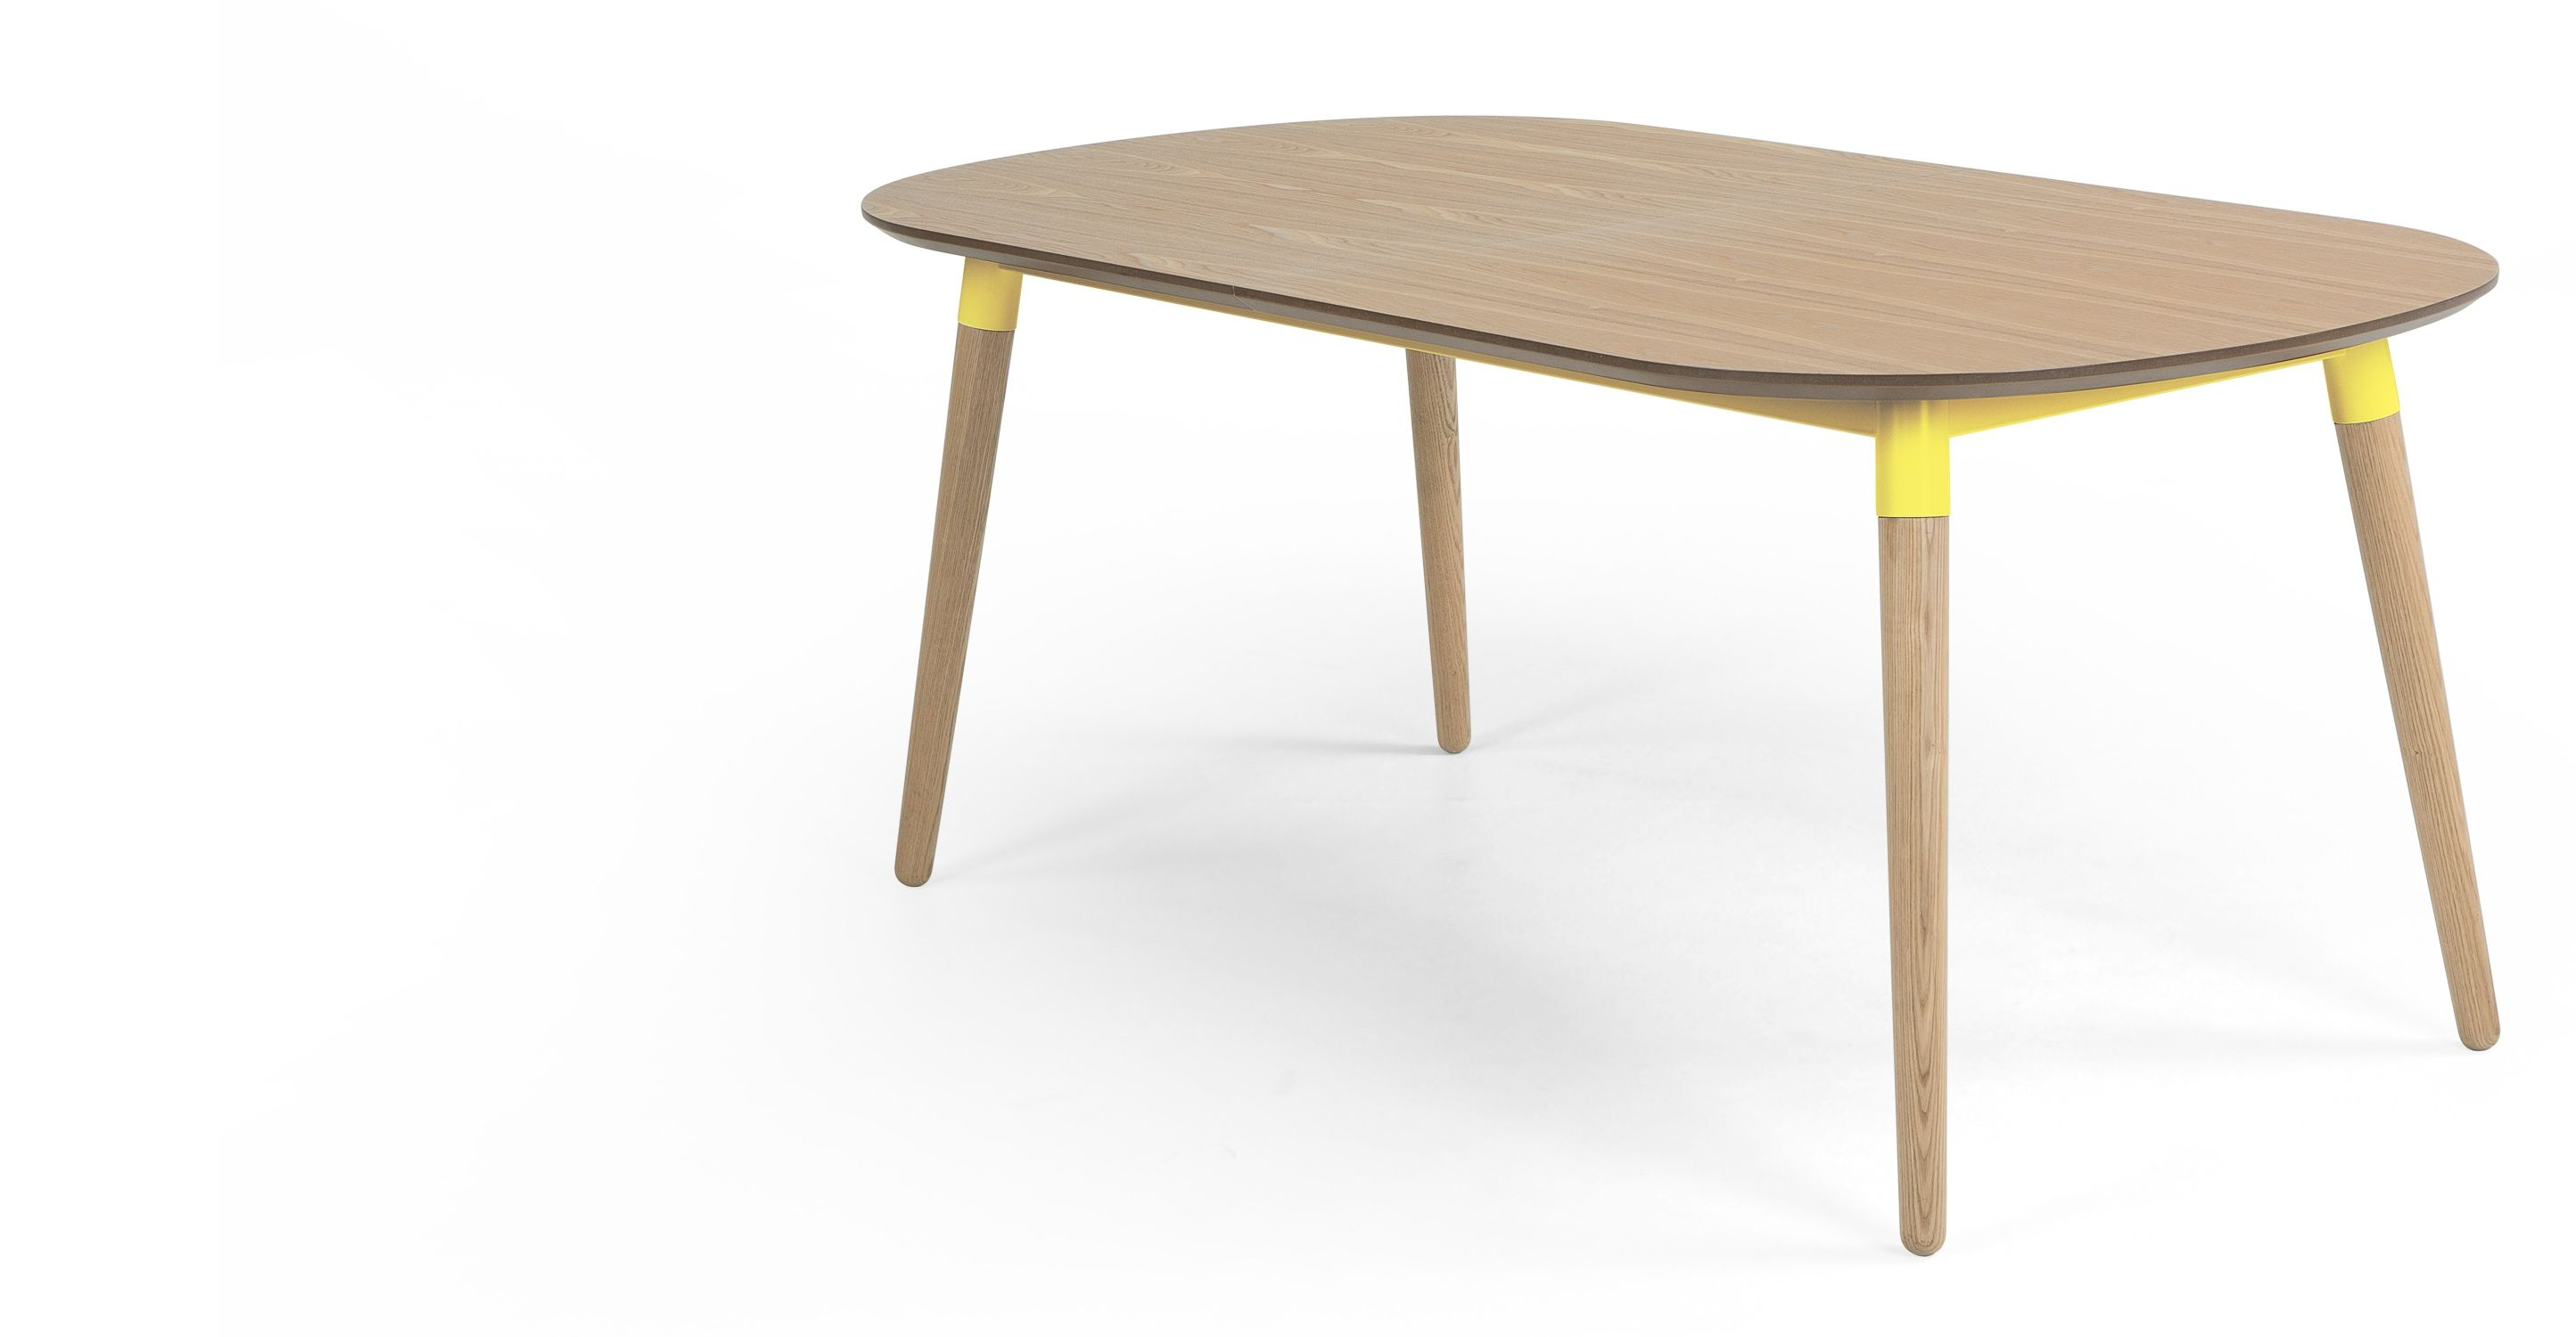 Edelweiss Extending Dining Table, Ash and Yellow   made.com   Home ...